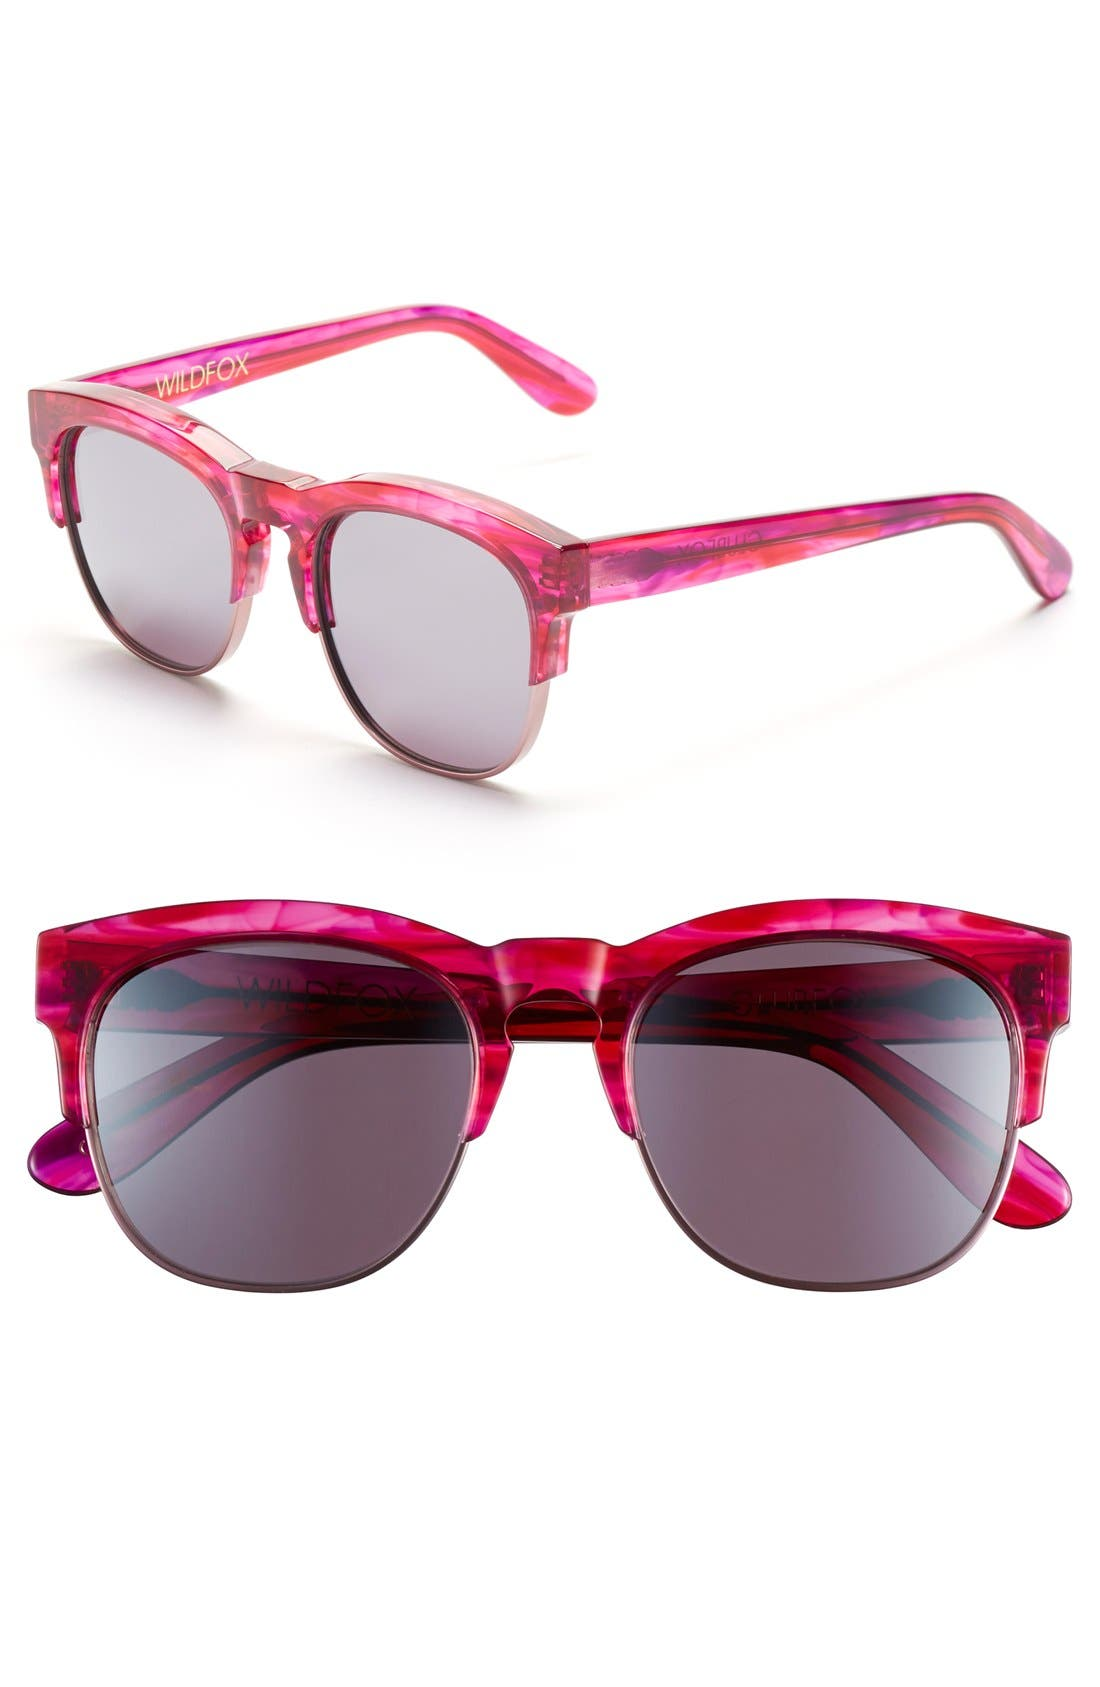 Main Image - Wildfox 'Club Fox Deluxe' 52mm Sunglasses